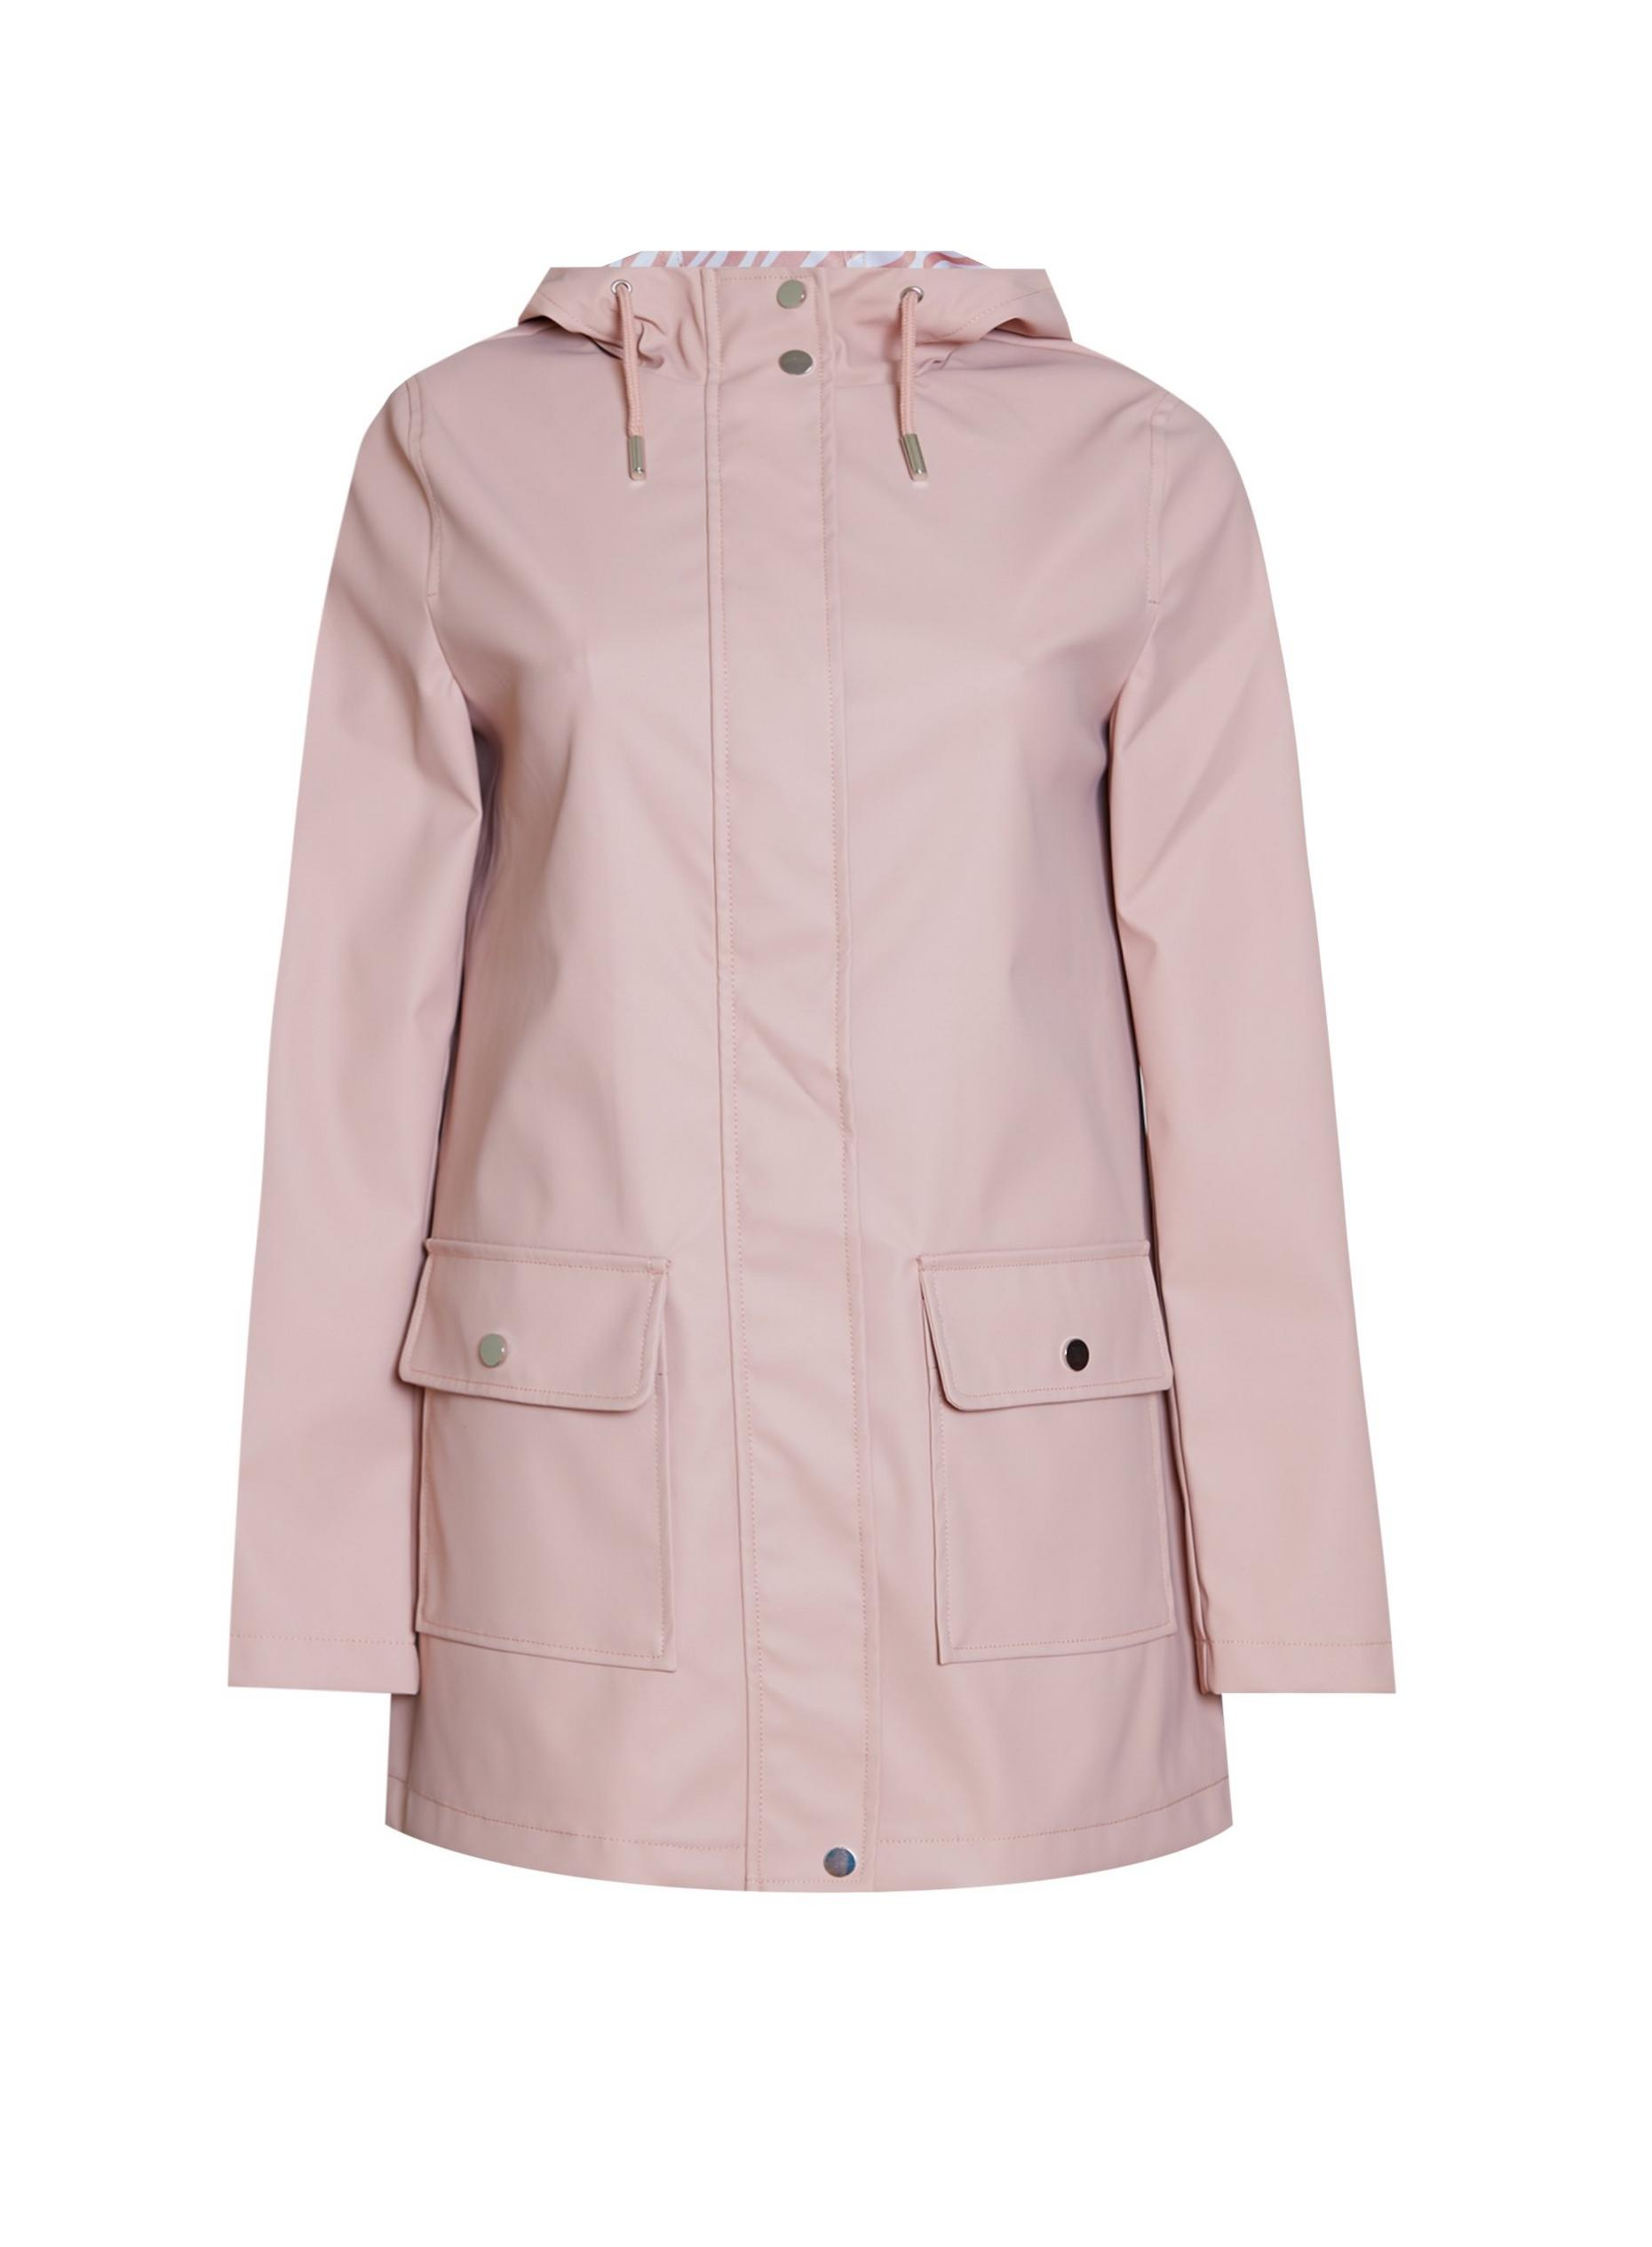 Blush PU Raincoat